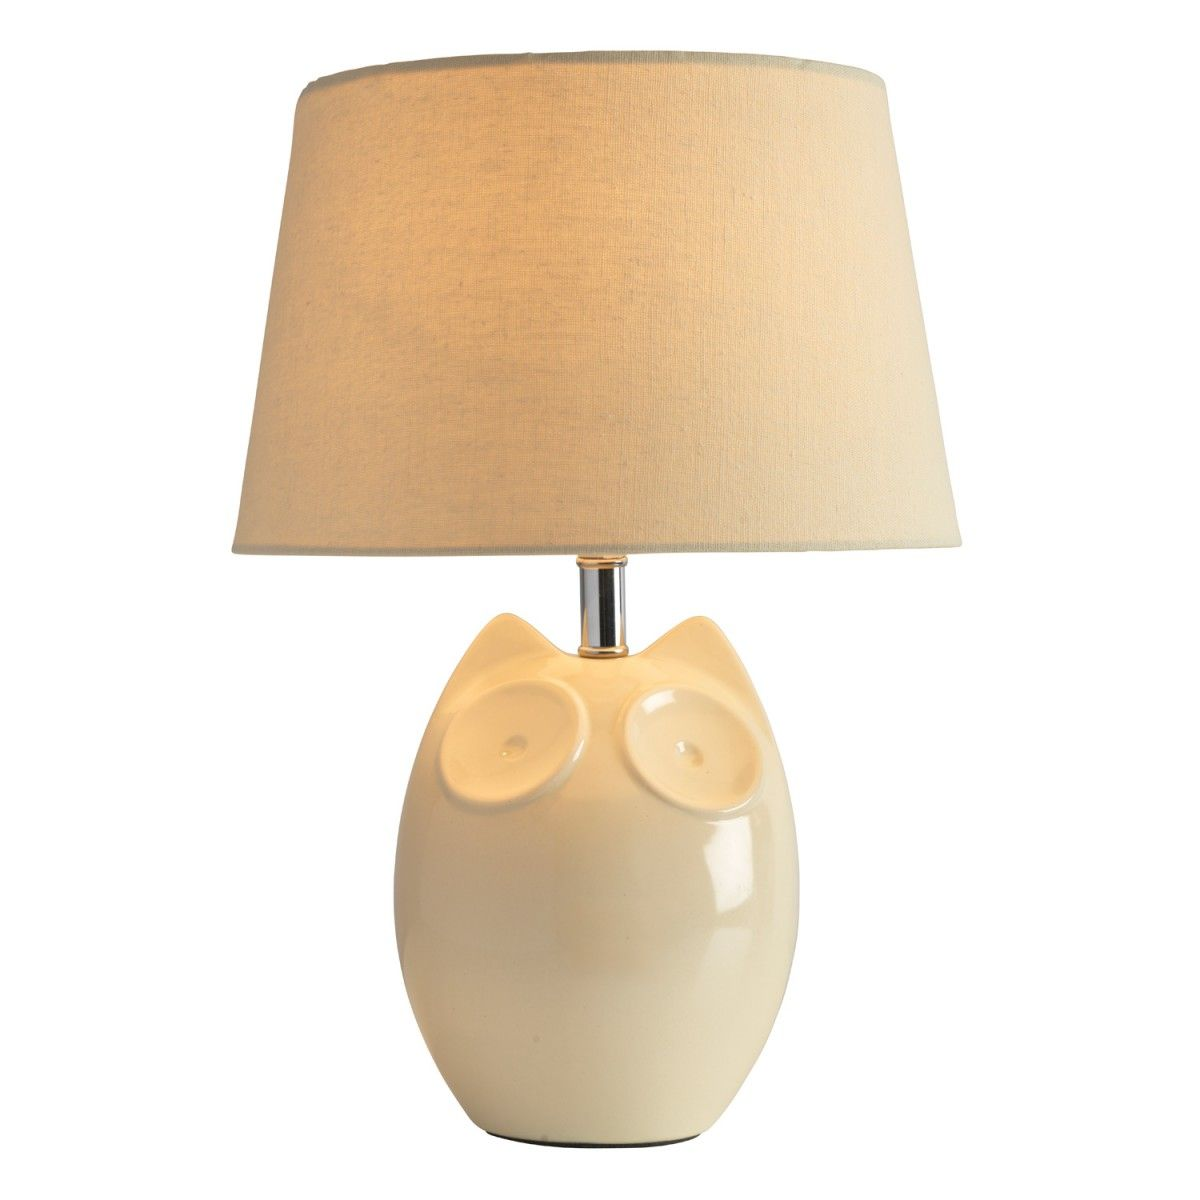 A cute and stylised glossy table lamp featuring the hector owl a cute and stylised glossy table lamp featuring the hector owl ceramic base in a geotapseo Choice Image